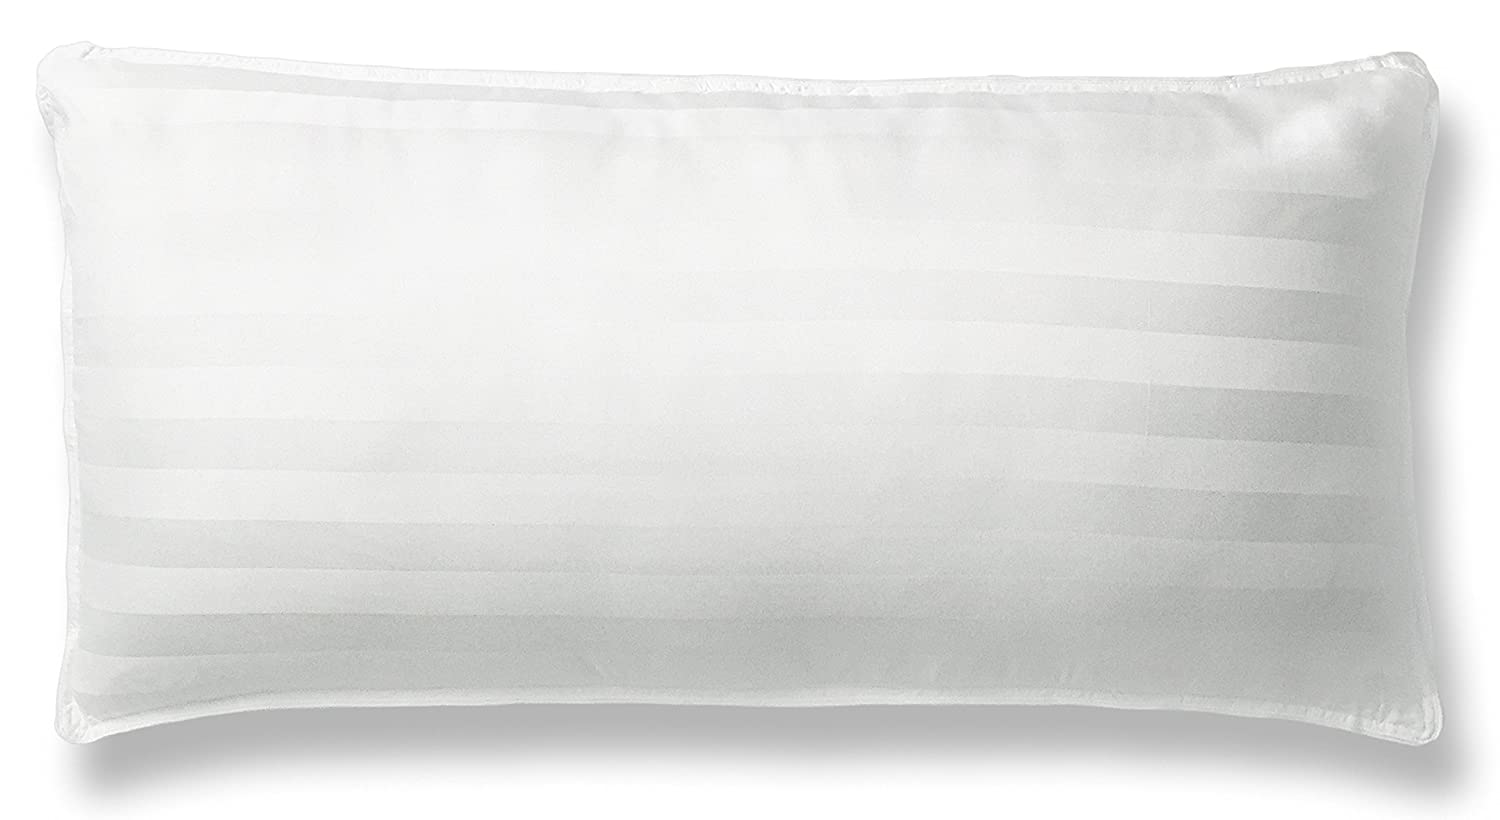 100% Bamboo Pillow Inside & Out - Adjustable Thickness to Support Back, Side & Stomach Sleepers